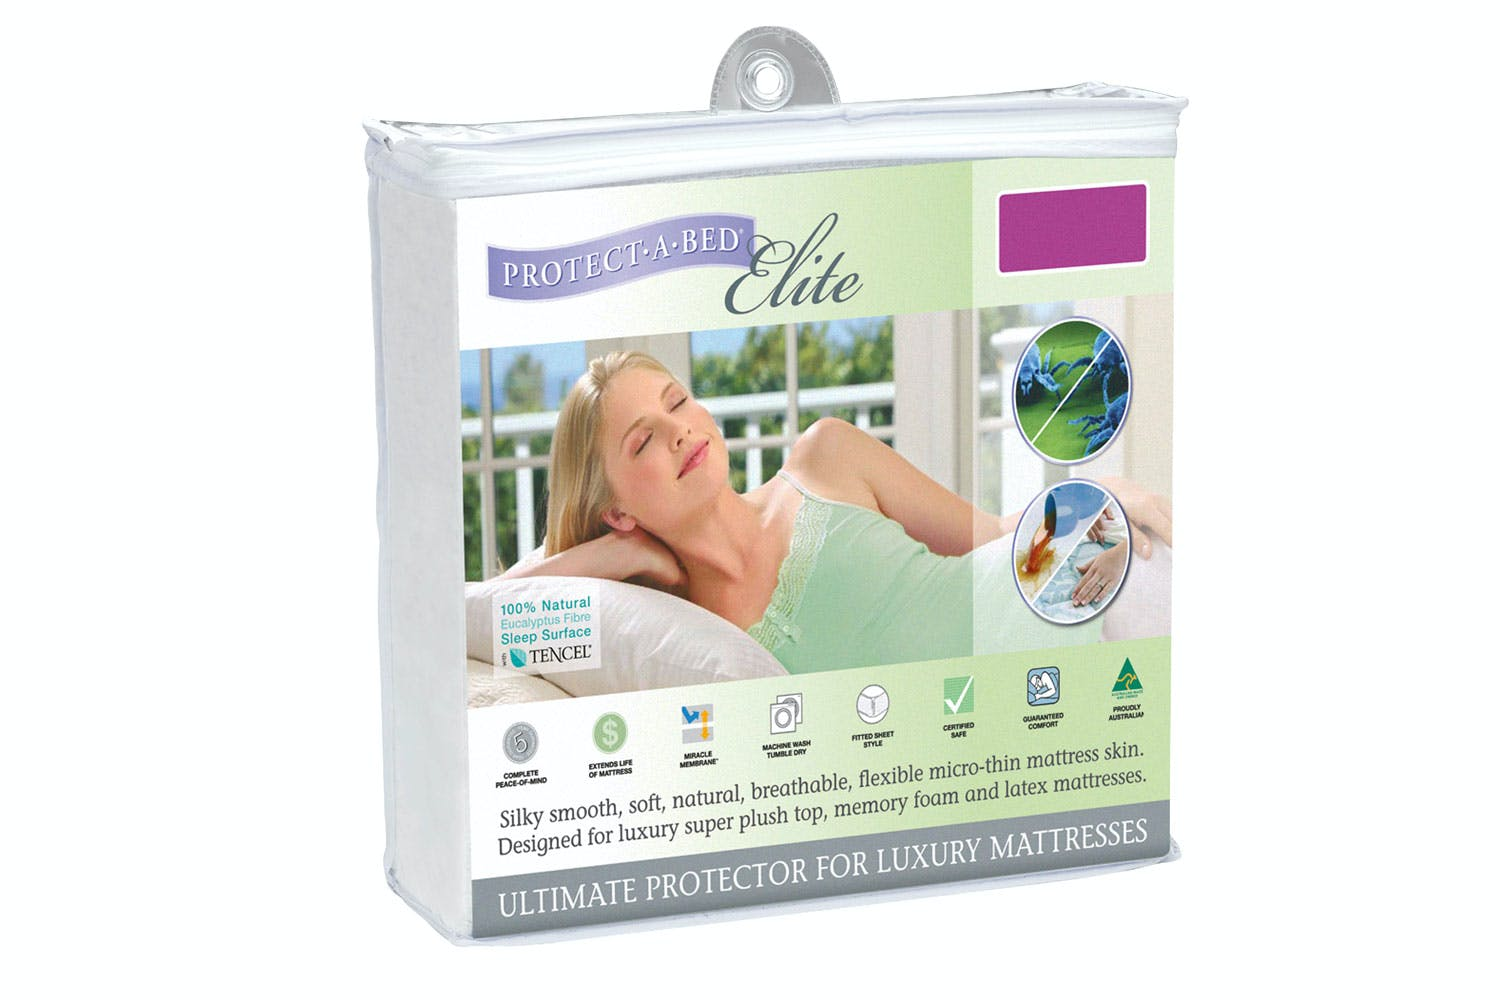 protect for bed lock a mattresses bug pabbuglockprotector protector and bases